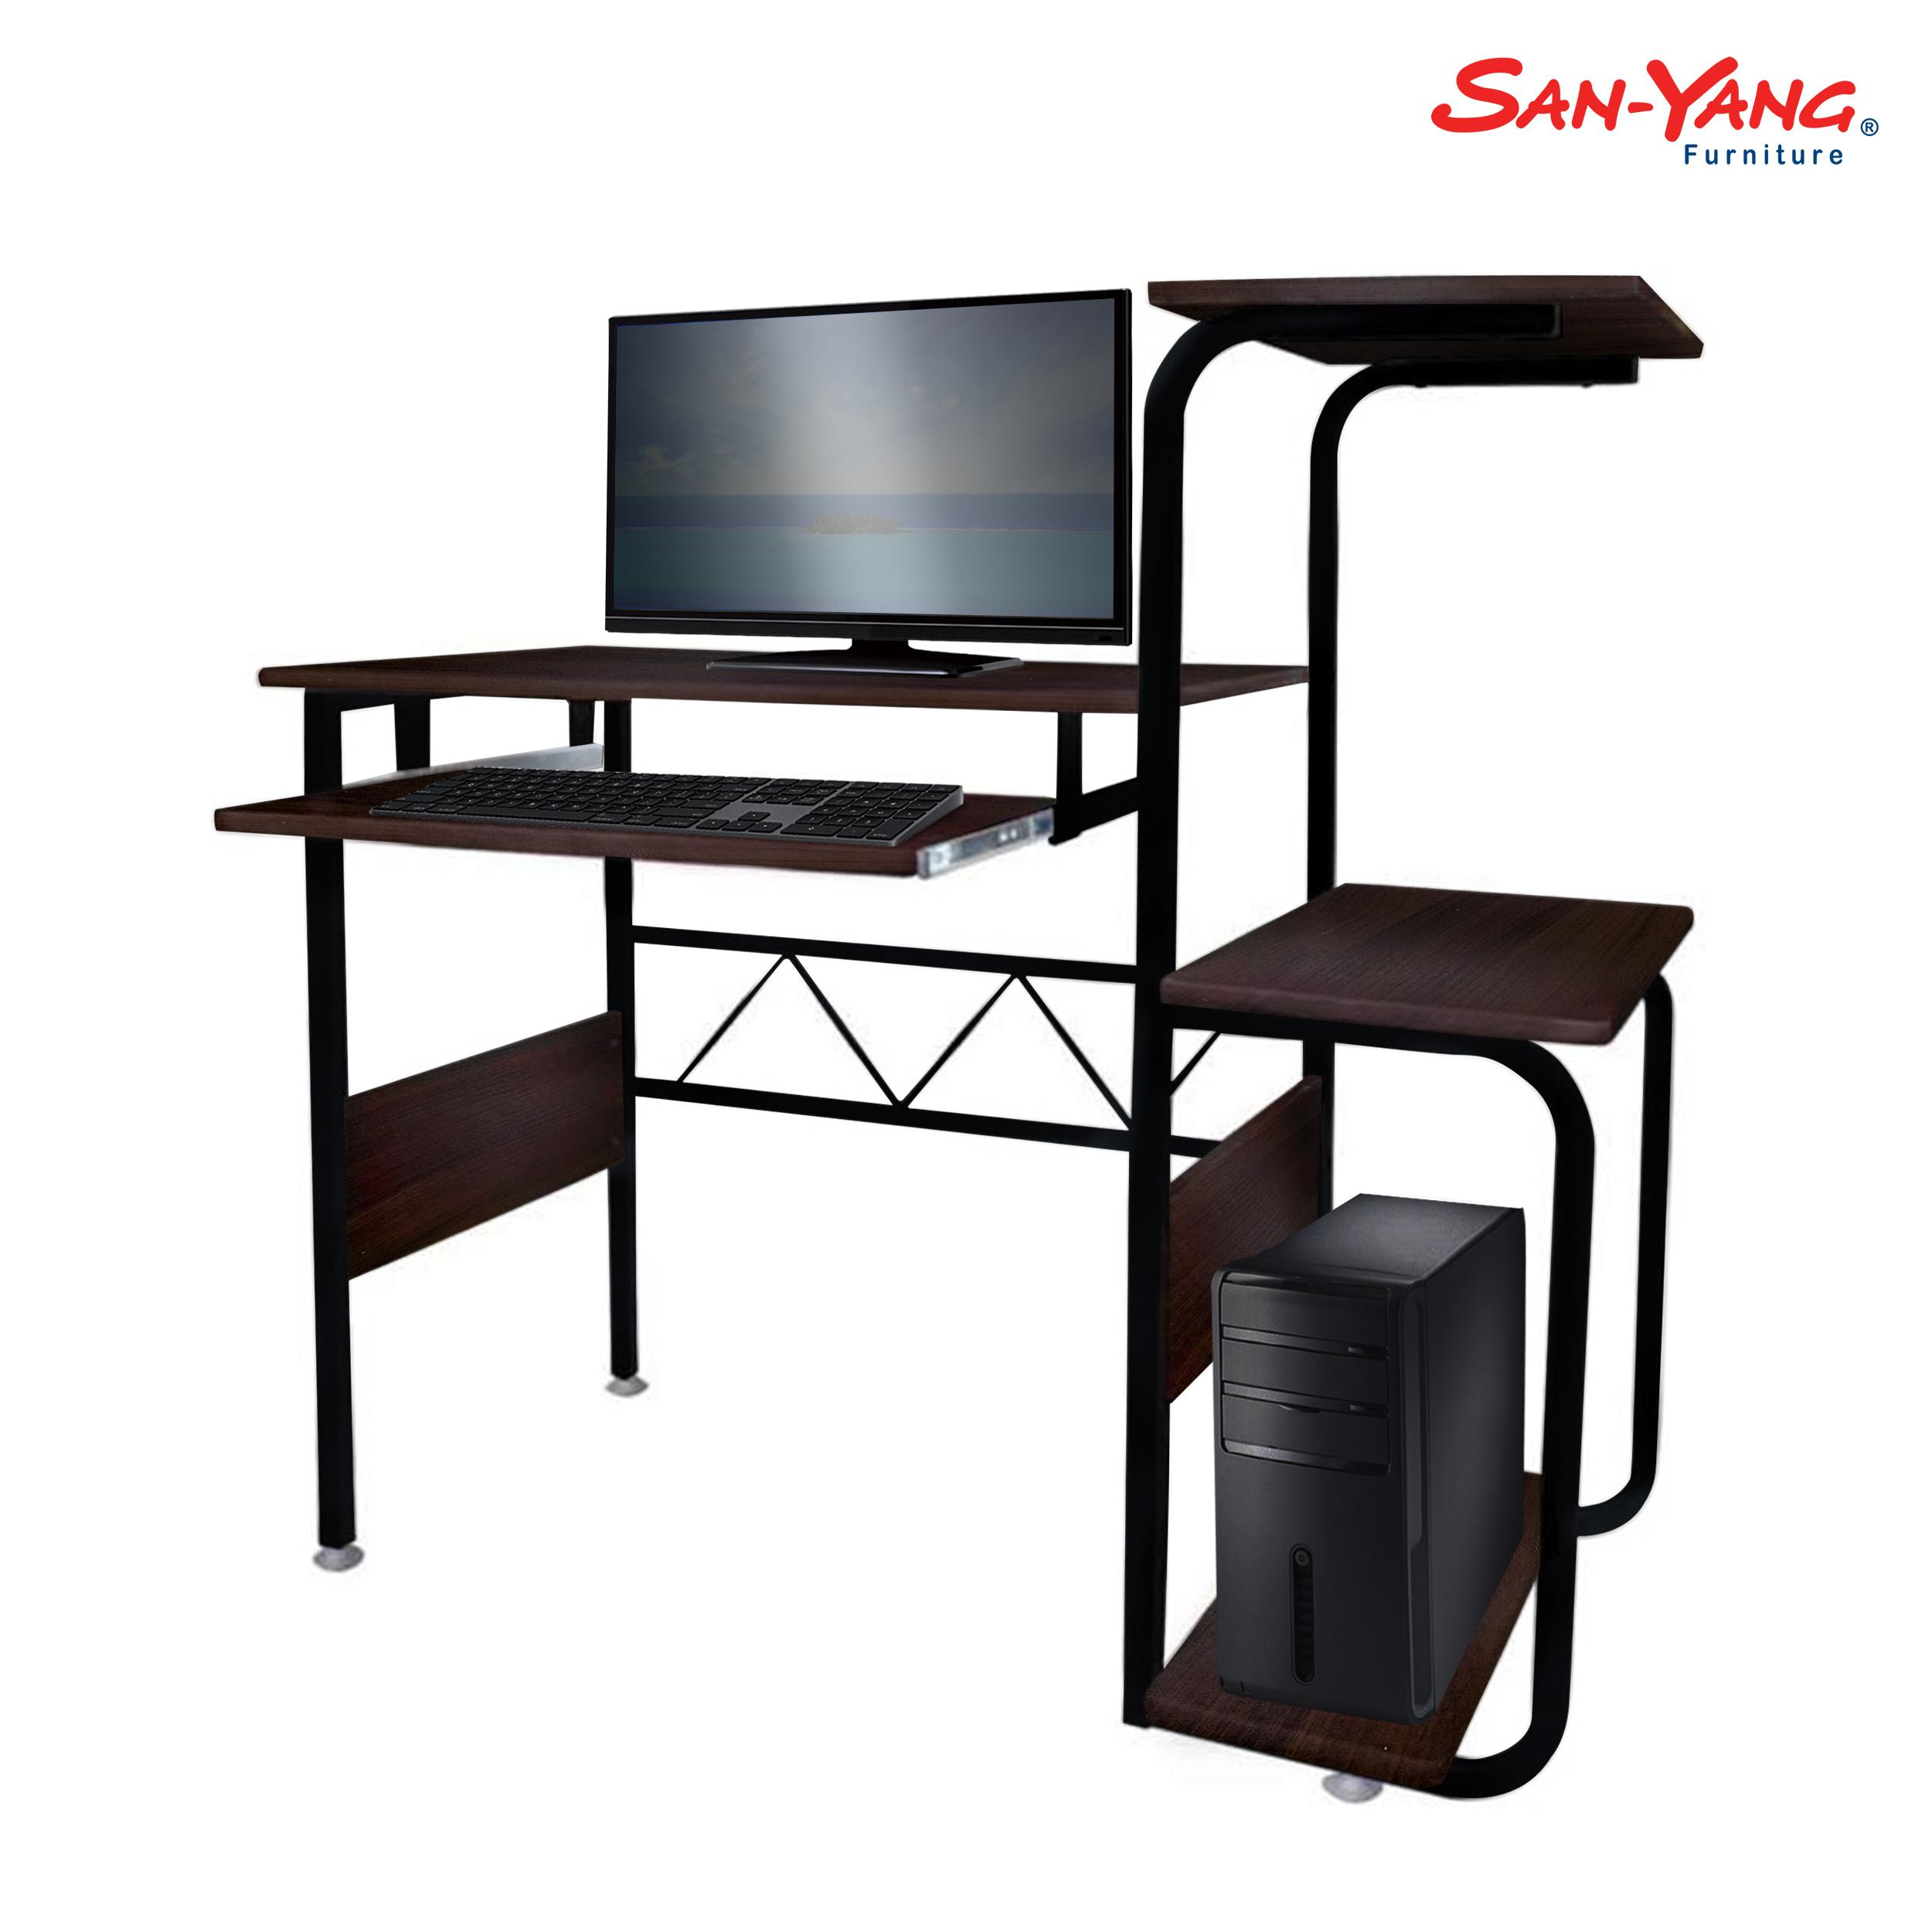 Office Furniture 2018 Notebook Computer Desk Bed Learning With Household Lifting Folding Mobile Bedside Table Home Writing Desktop Computer Desk Furniture